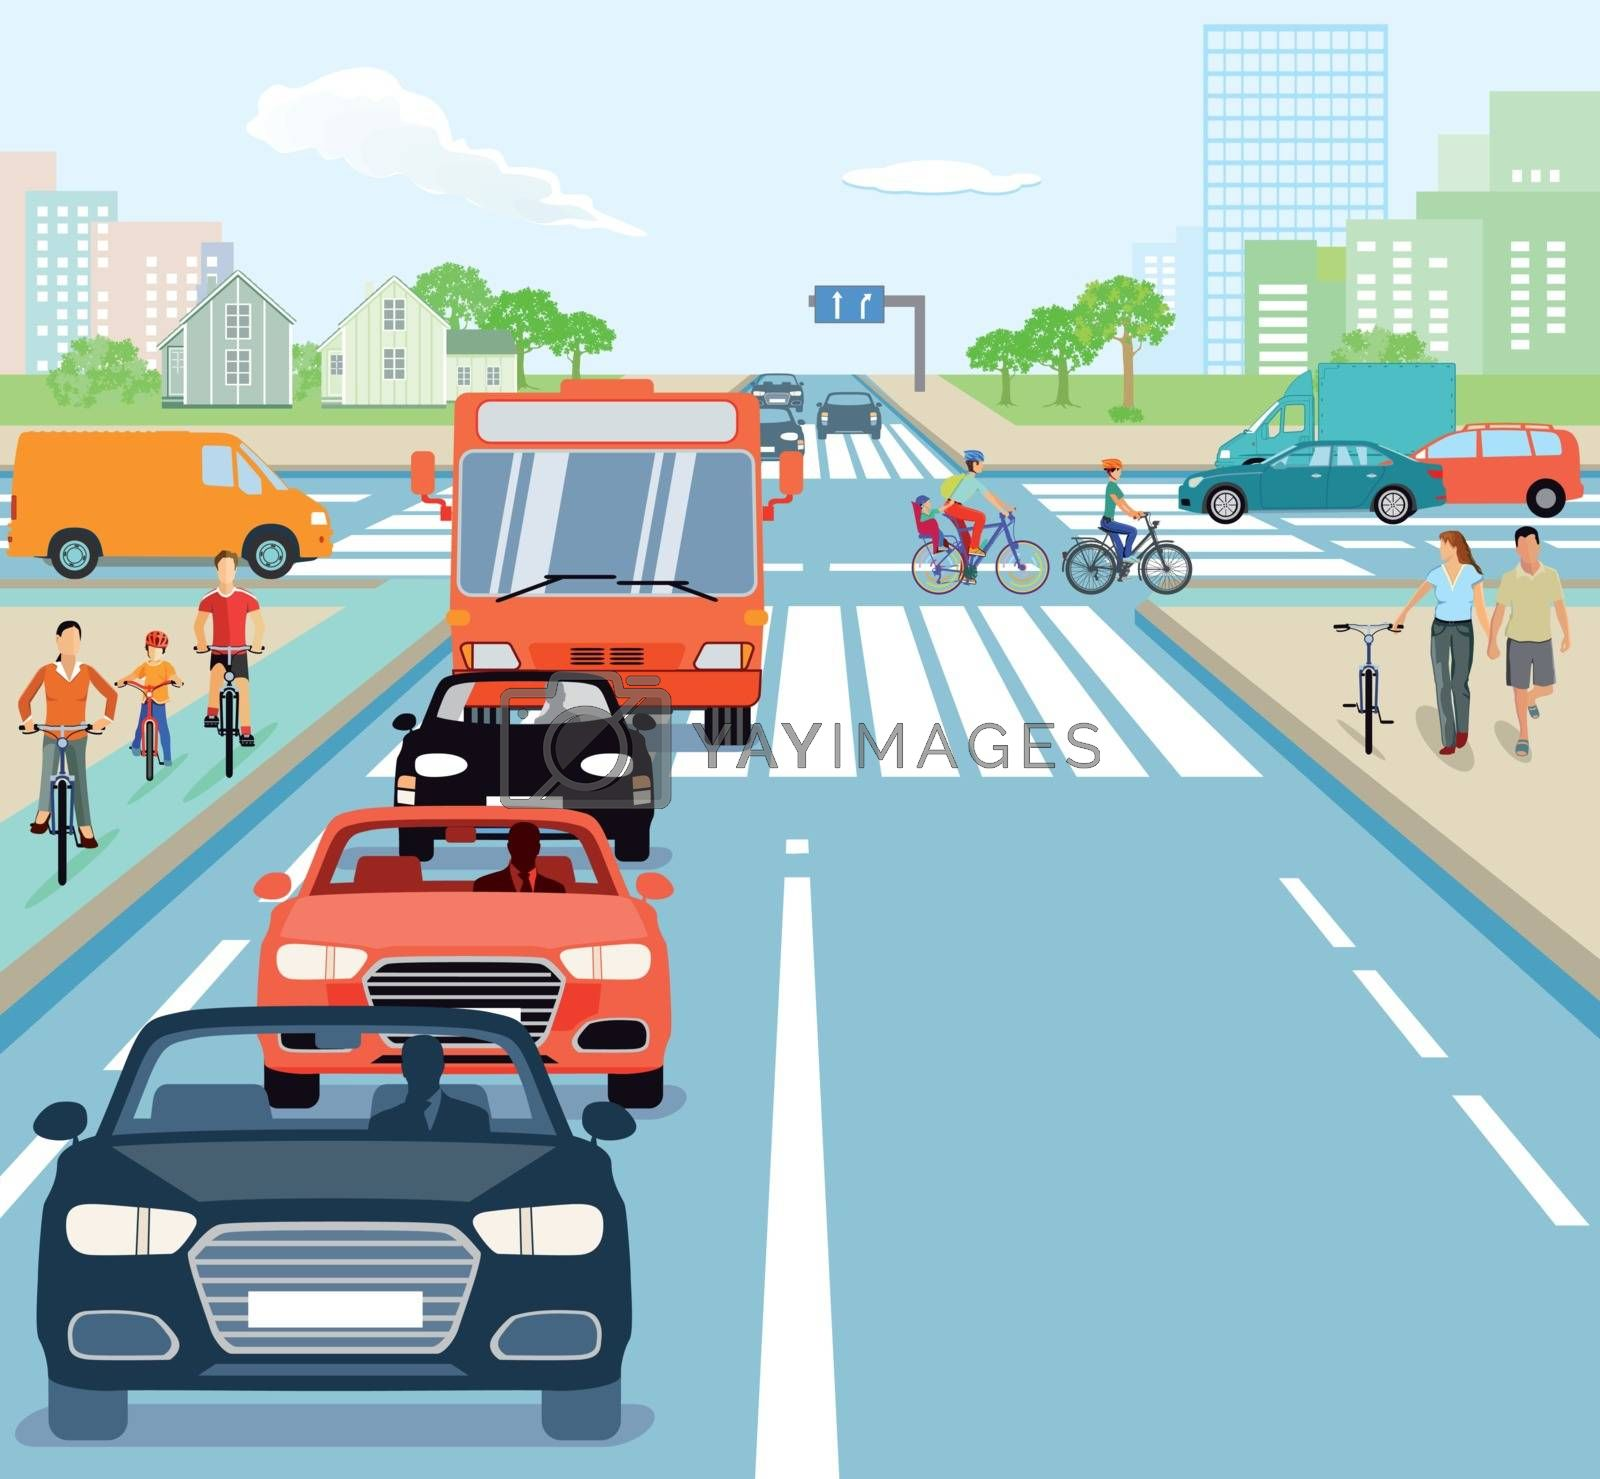 Road junction with cyclists and cars